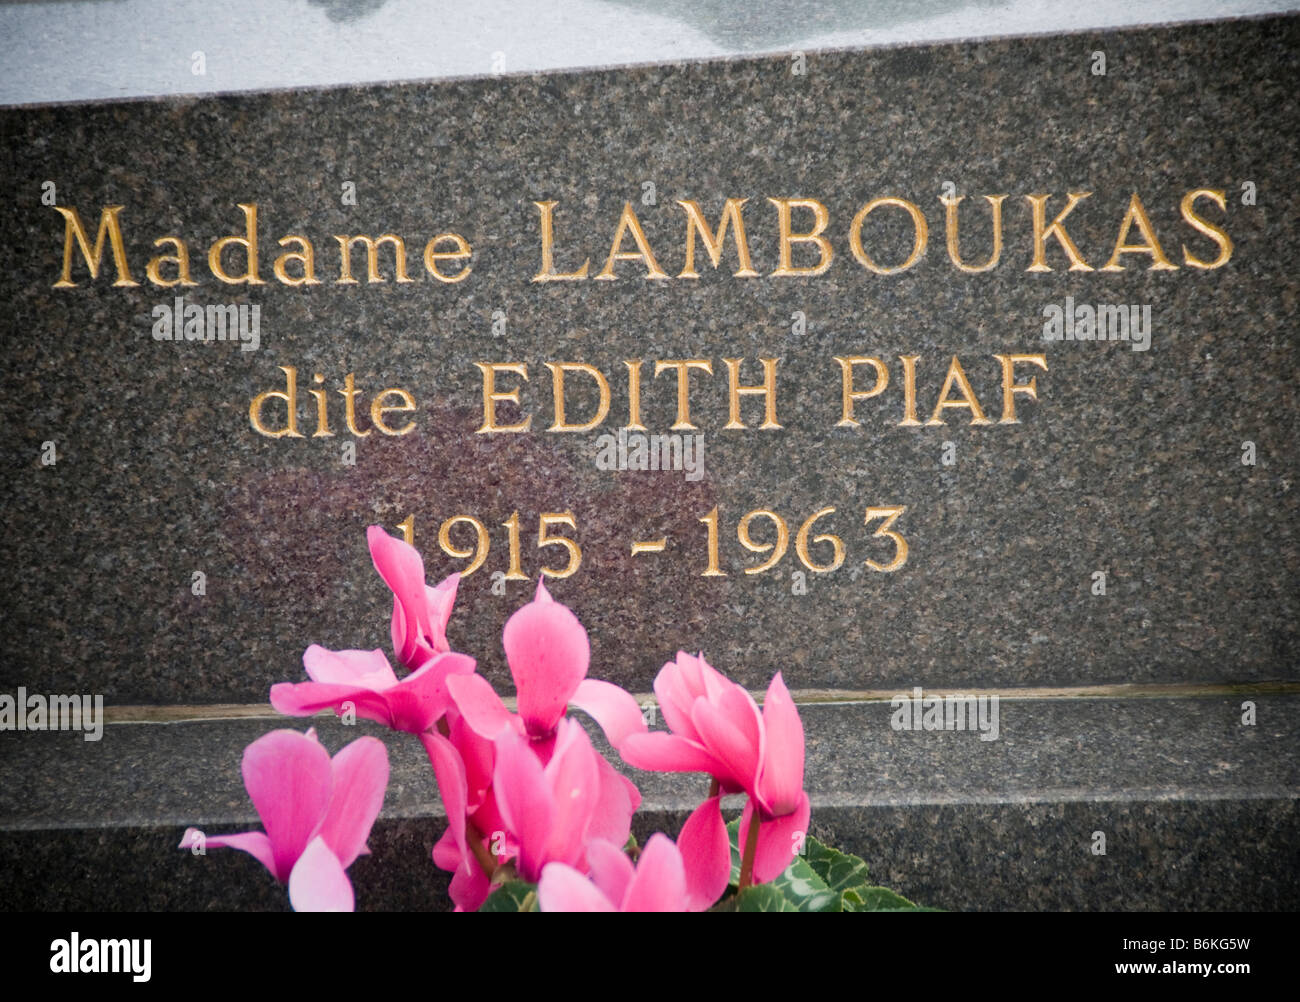 Grave of Edith Piaf at the Pere Lachaise Cemetery Paris France - Stock Image